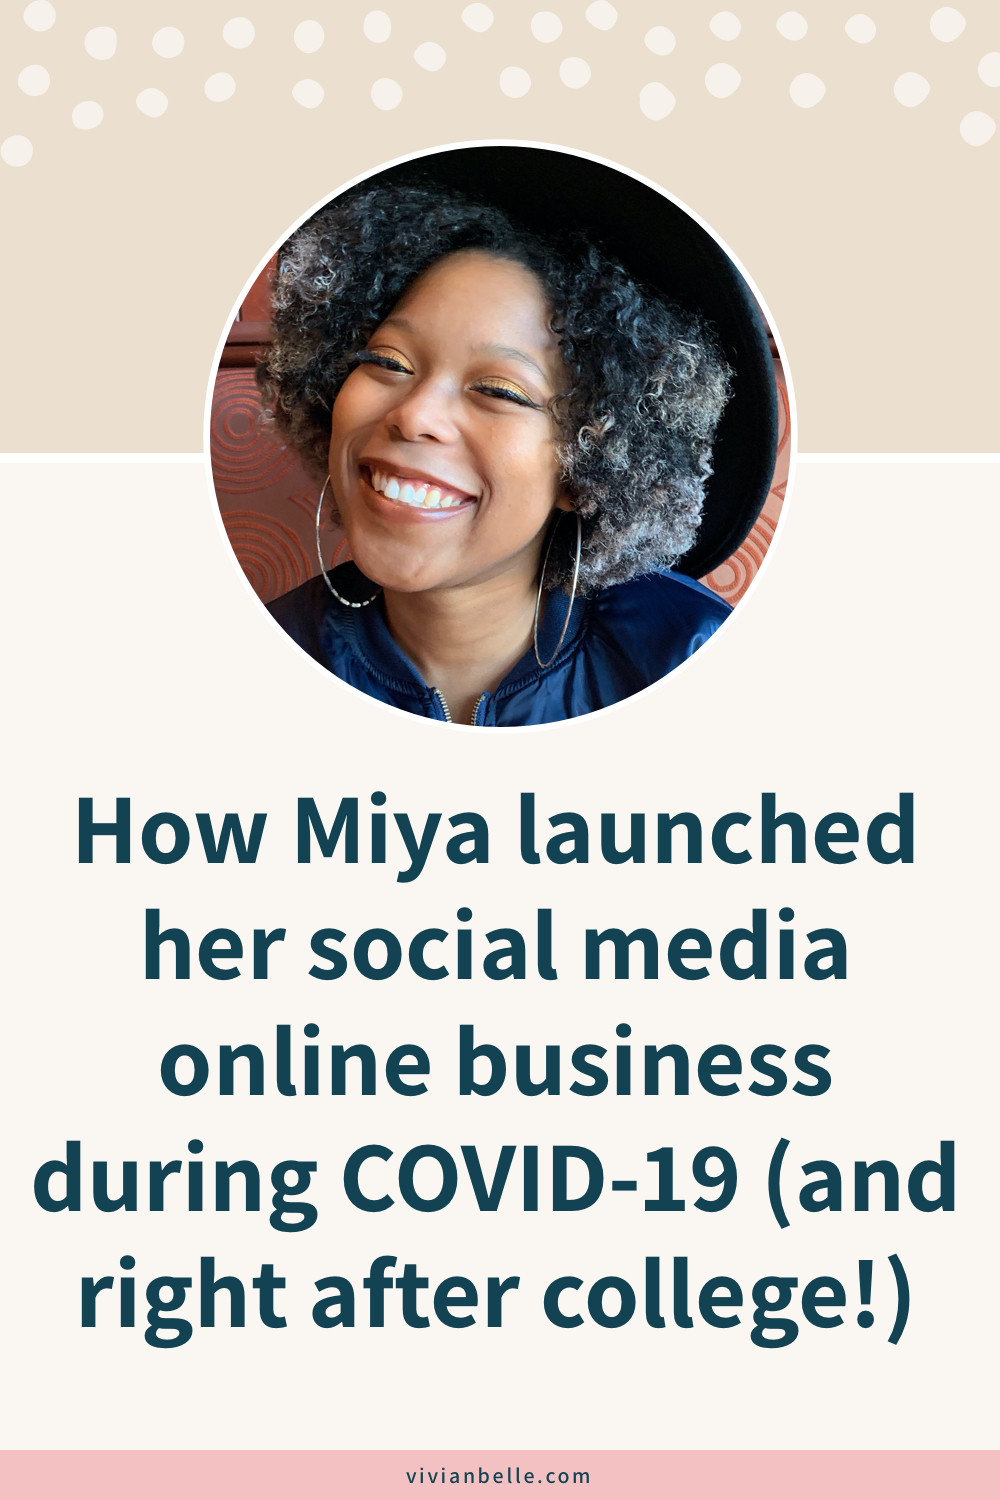 How Miya launched her social media online business during COVID-19